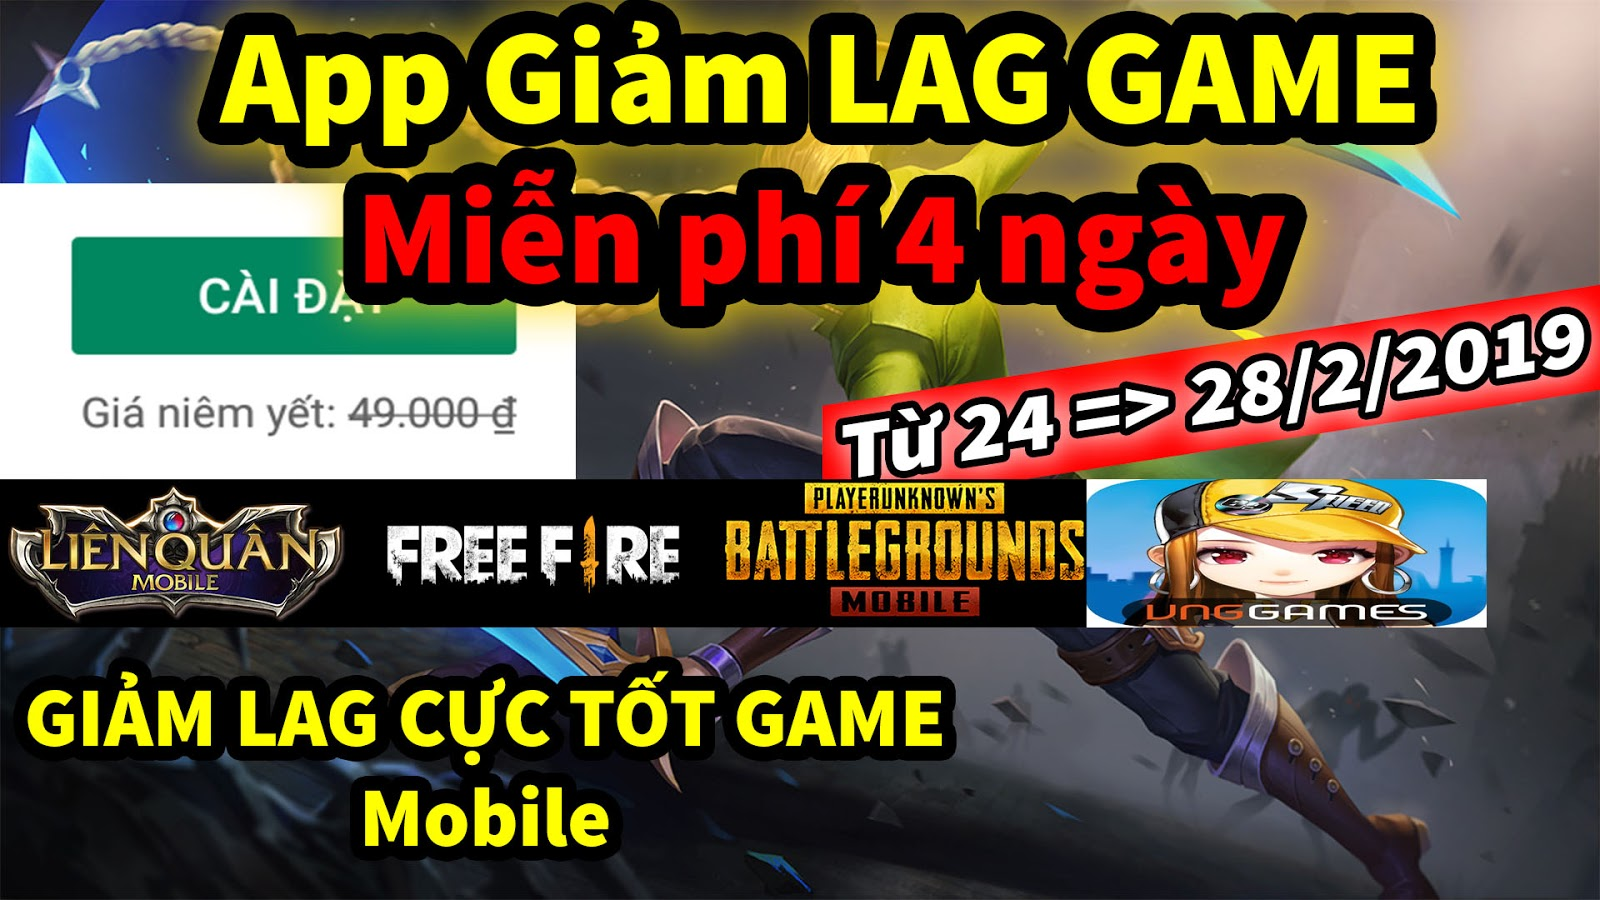 Pubg Mobile Pc Giam Lag - Pubg Mobile Hack Error